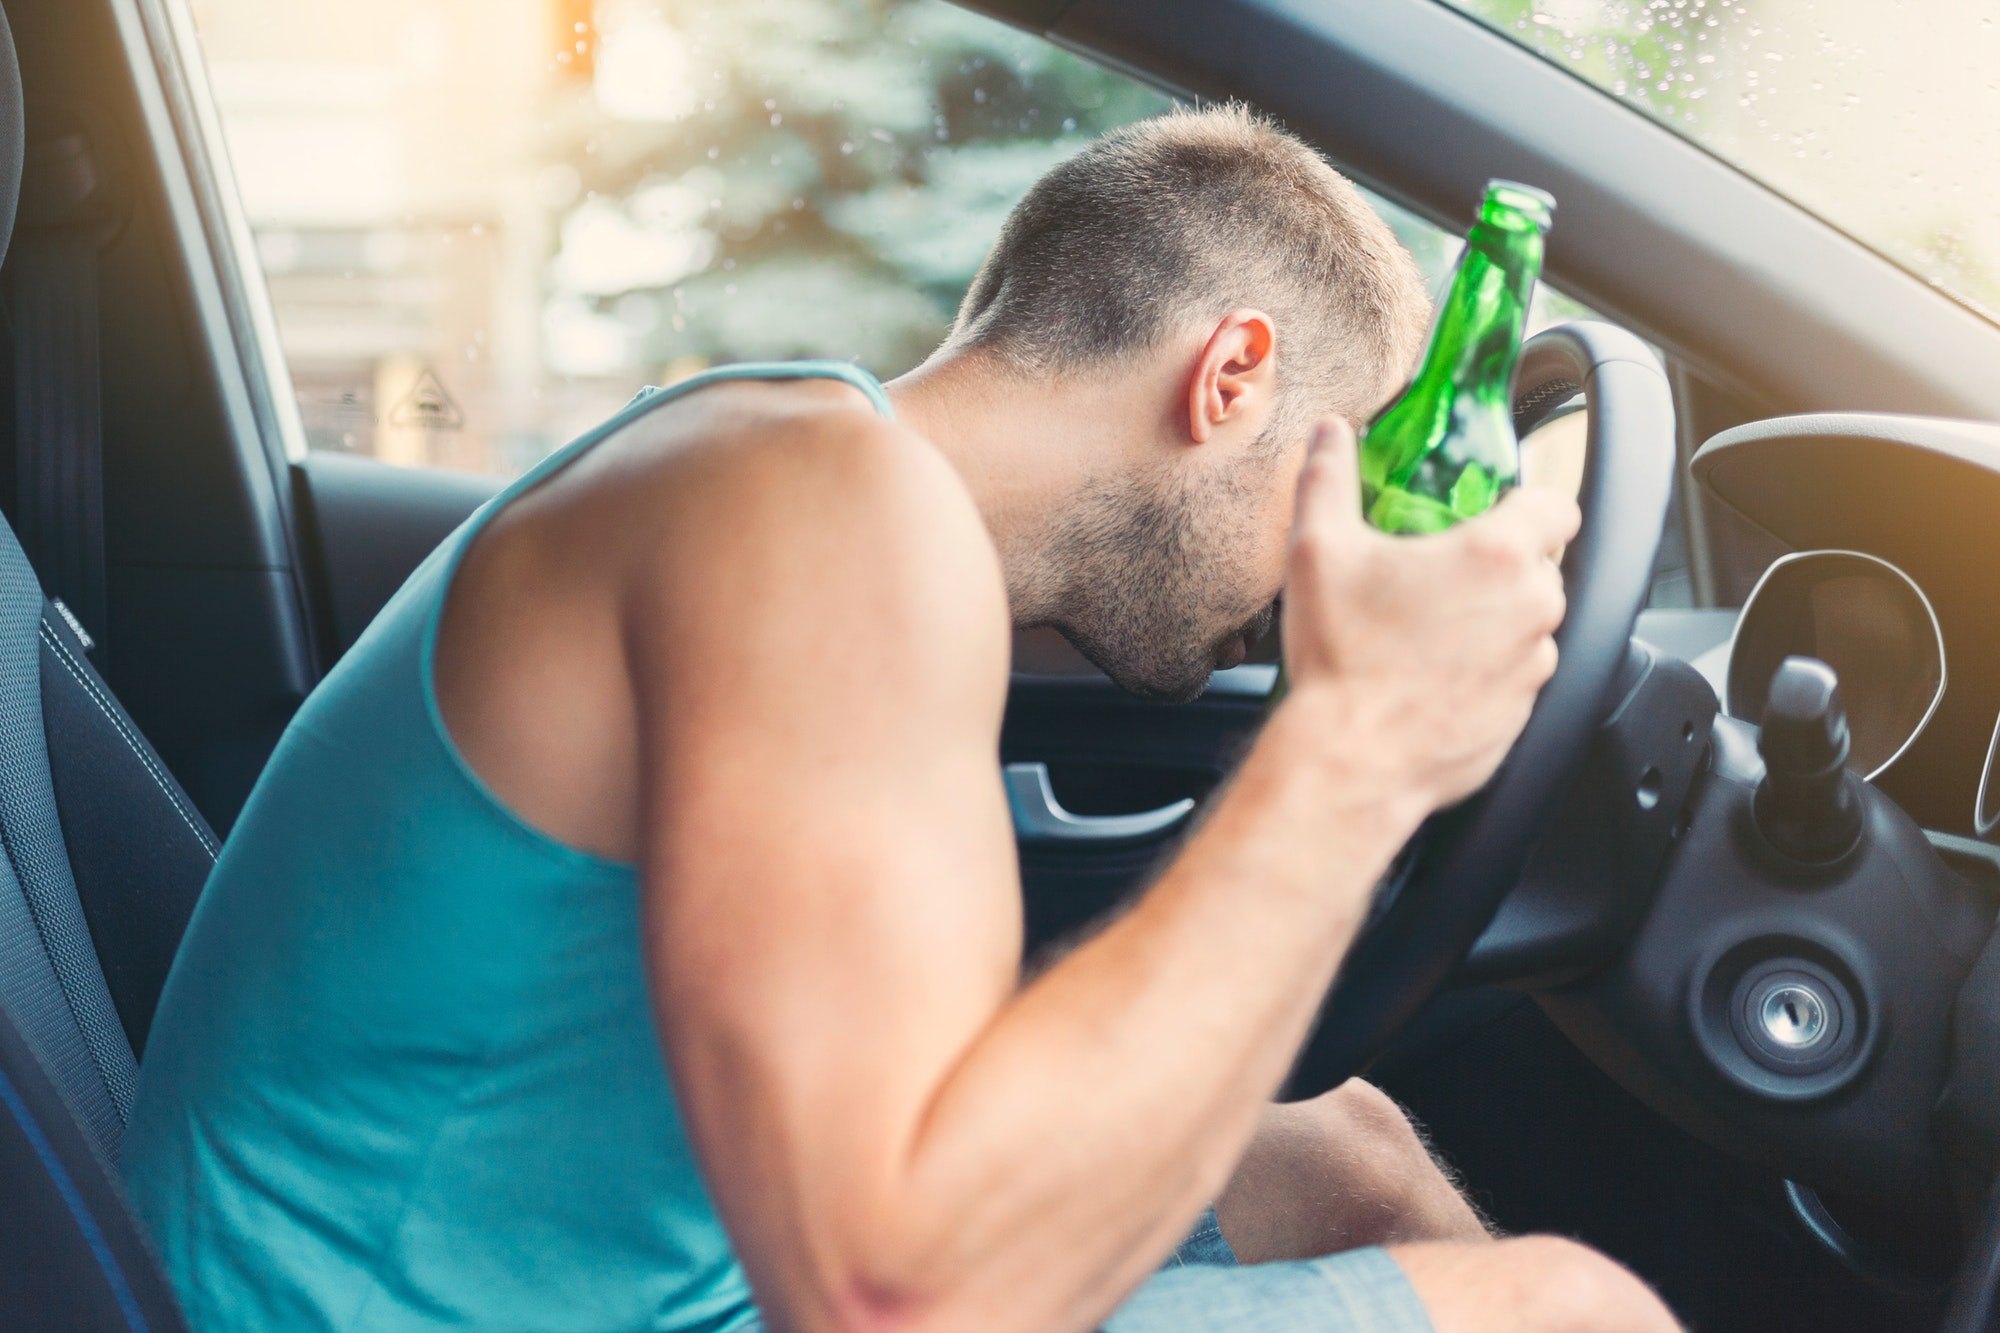 Drunk driver behind the steering wheel of a car